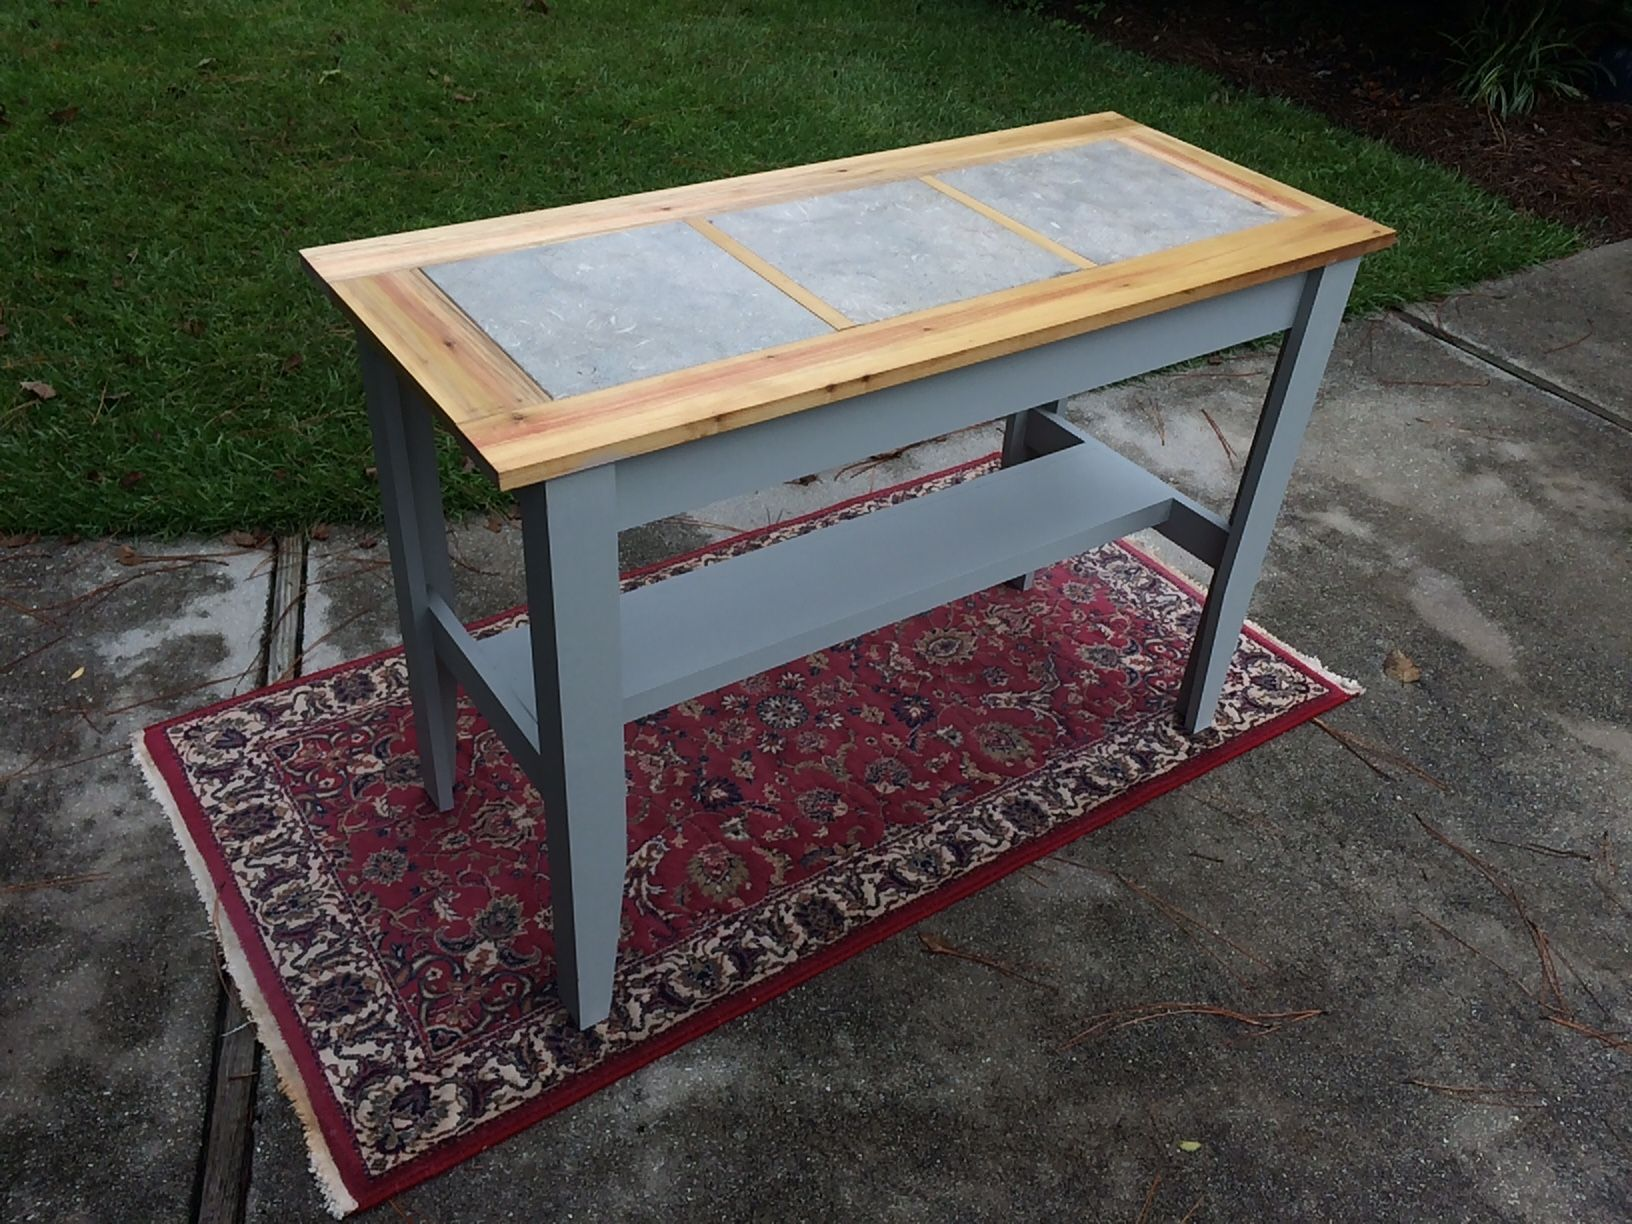 Buy A Hand Crafted Console Table With Inlaid Ceramic Tile Perfect